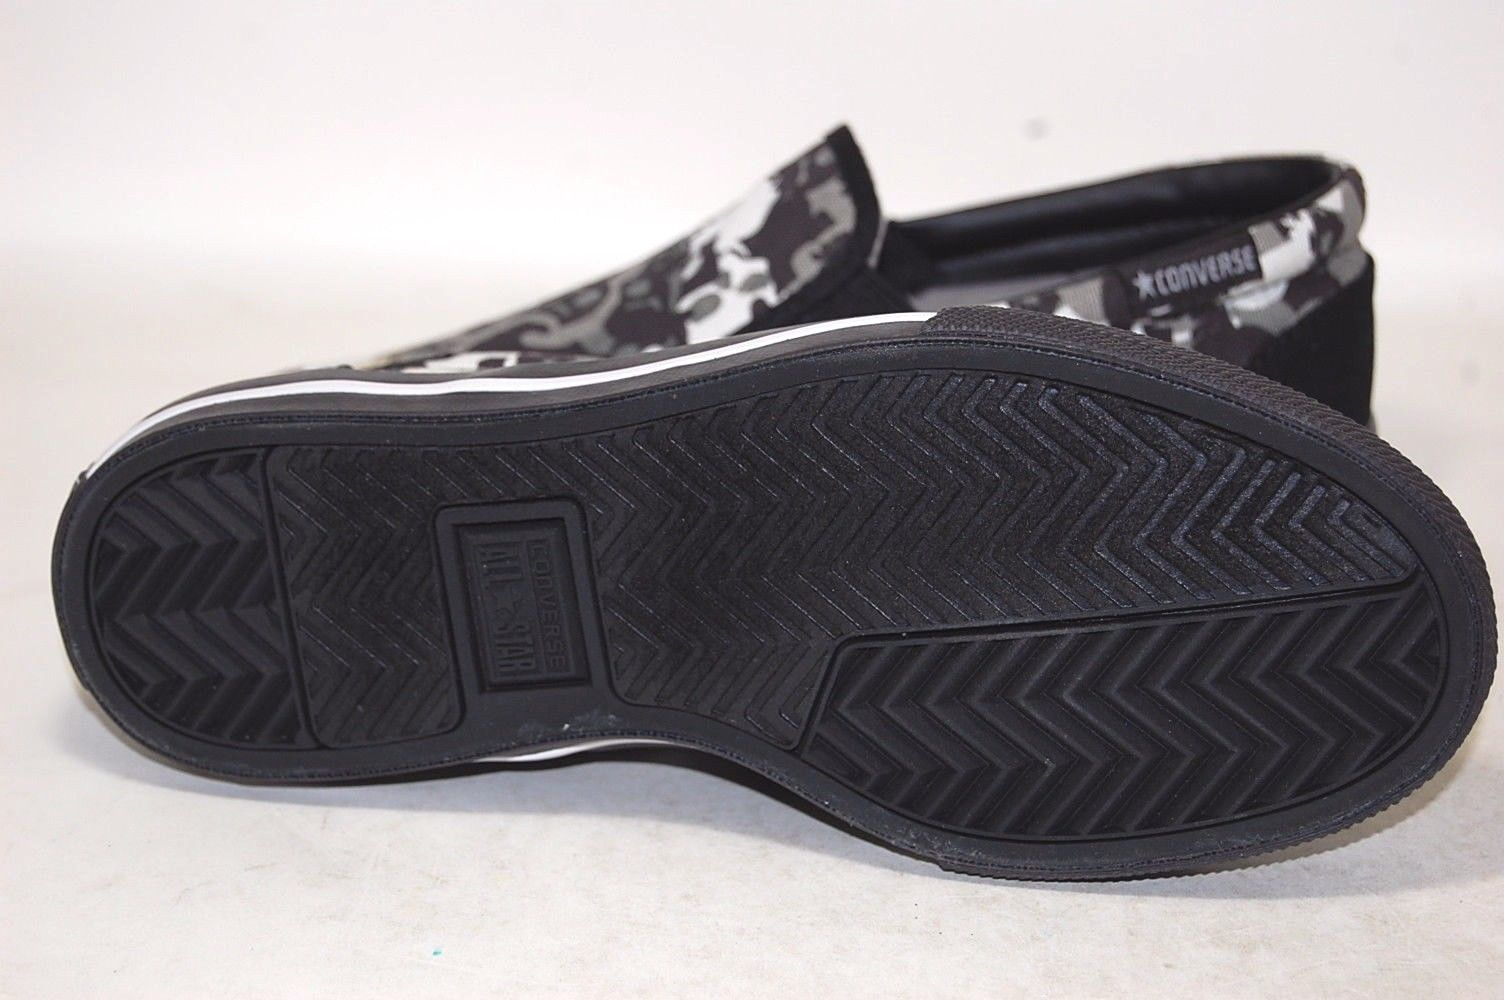 58c956f33fea Converse Skid Grip EV Slip On 1X904 Shoes Men and 50 similar items